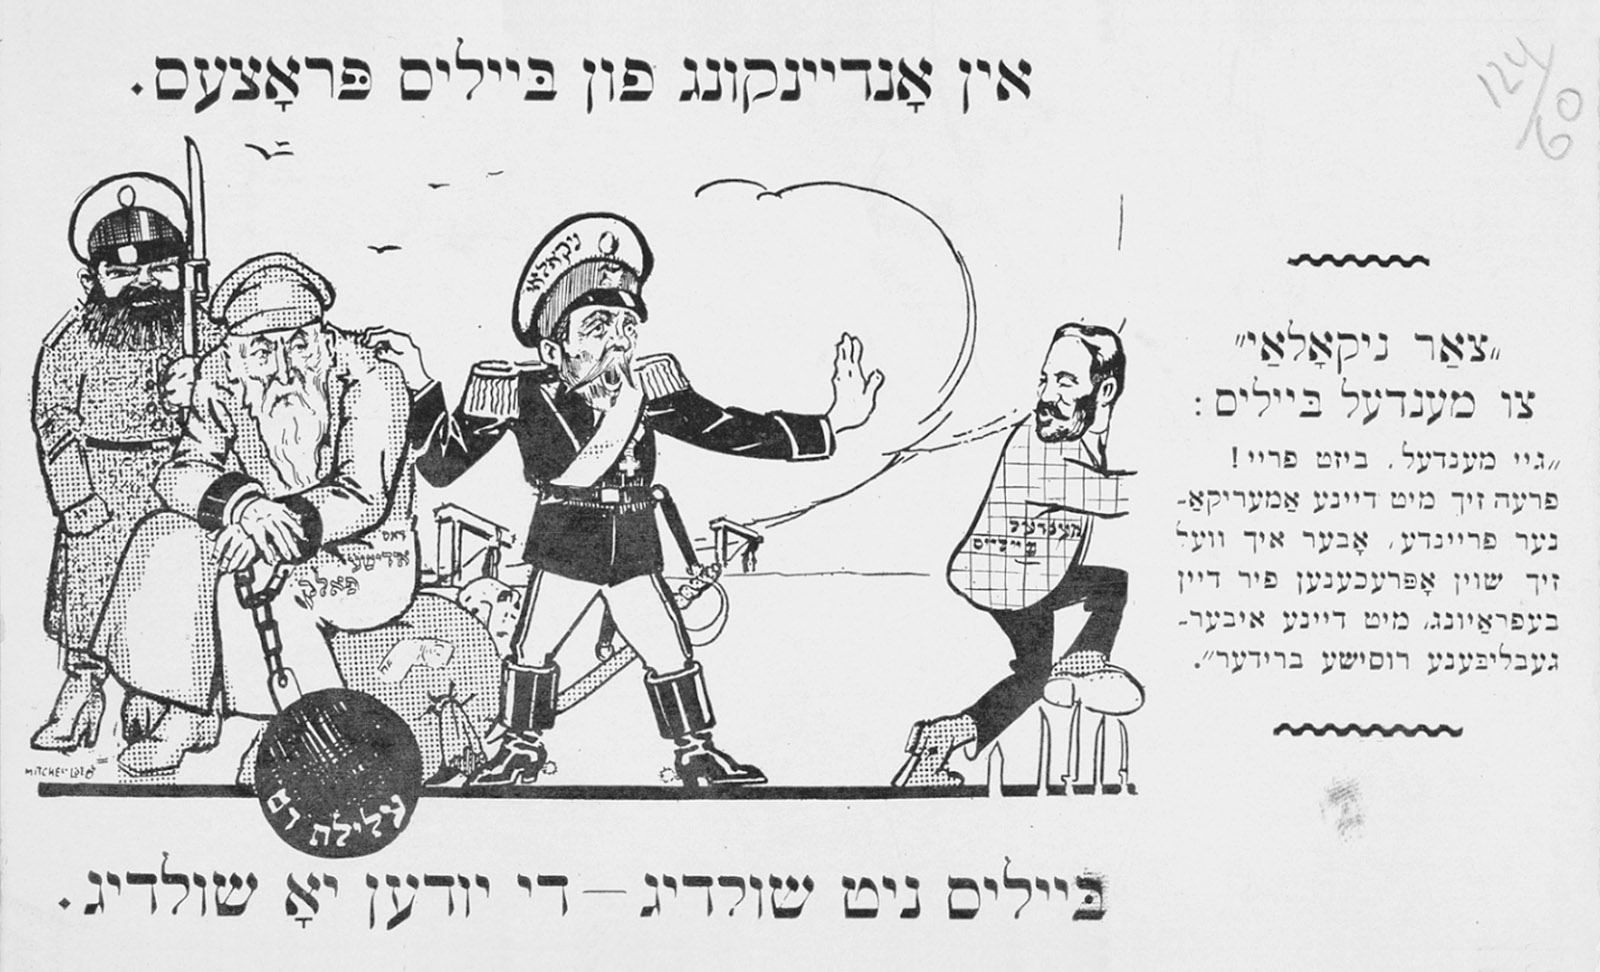 A postcard in Yiddish commemorating the verdict in the 1913 trial of Mendel Beilis, a Jew charged with the ritual religious killing of a Christian child in Kiev. The jury acquitted Beilis but judged that the crime had occurred. Tsar Nicholas II (center) is bidding Beilis to go free—'but I won't waste any time in getting even for your acquittal with your Russian brothers you've left behind.' The seated old man depicts the 'Jewish people'; the ball and chain is labeled 'blood libel.' A conference on the blood libel will be presented by the YIVO Institute for Jewish Research and Center for Jewish History in New York on October 9.